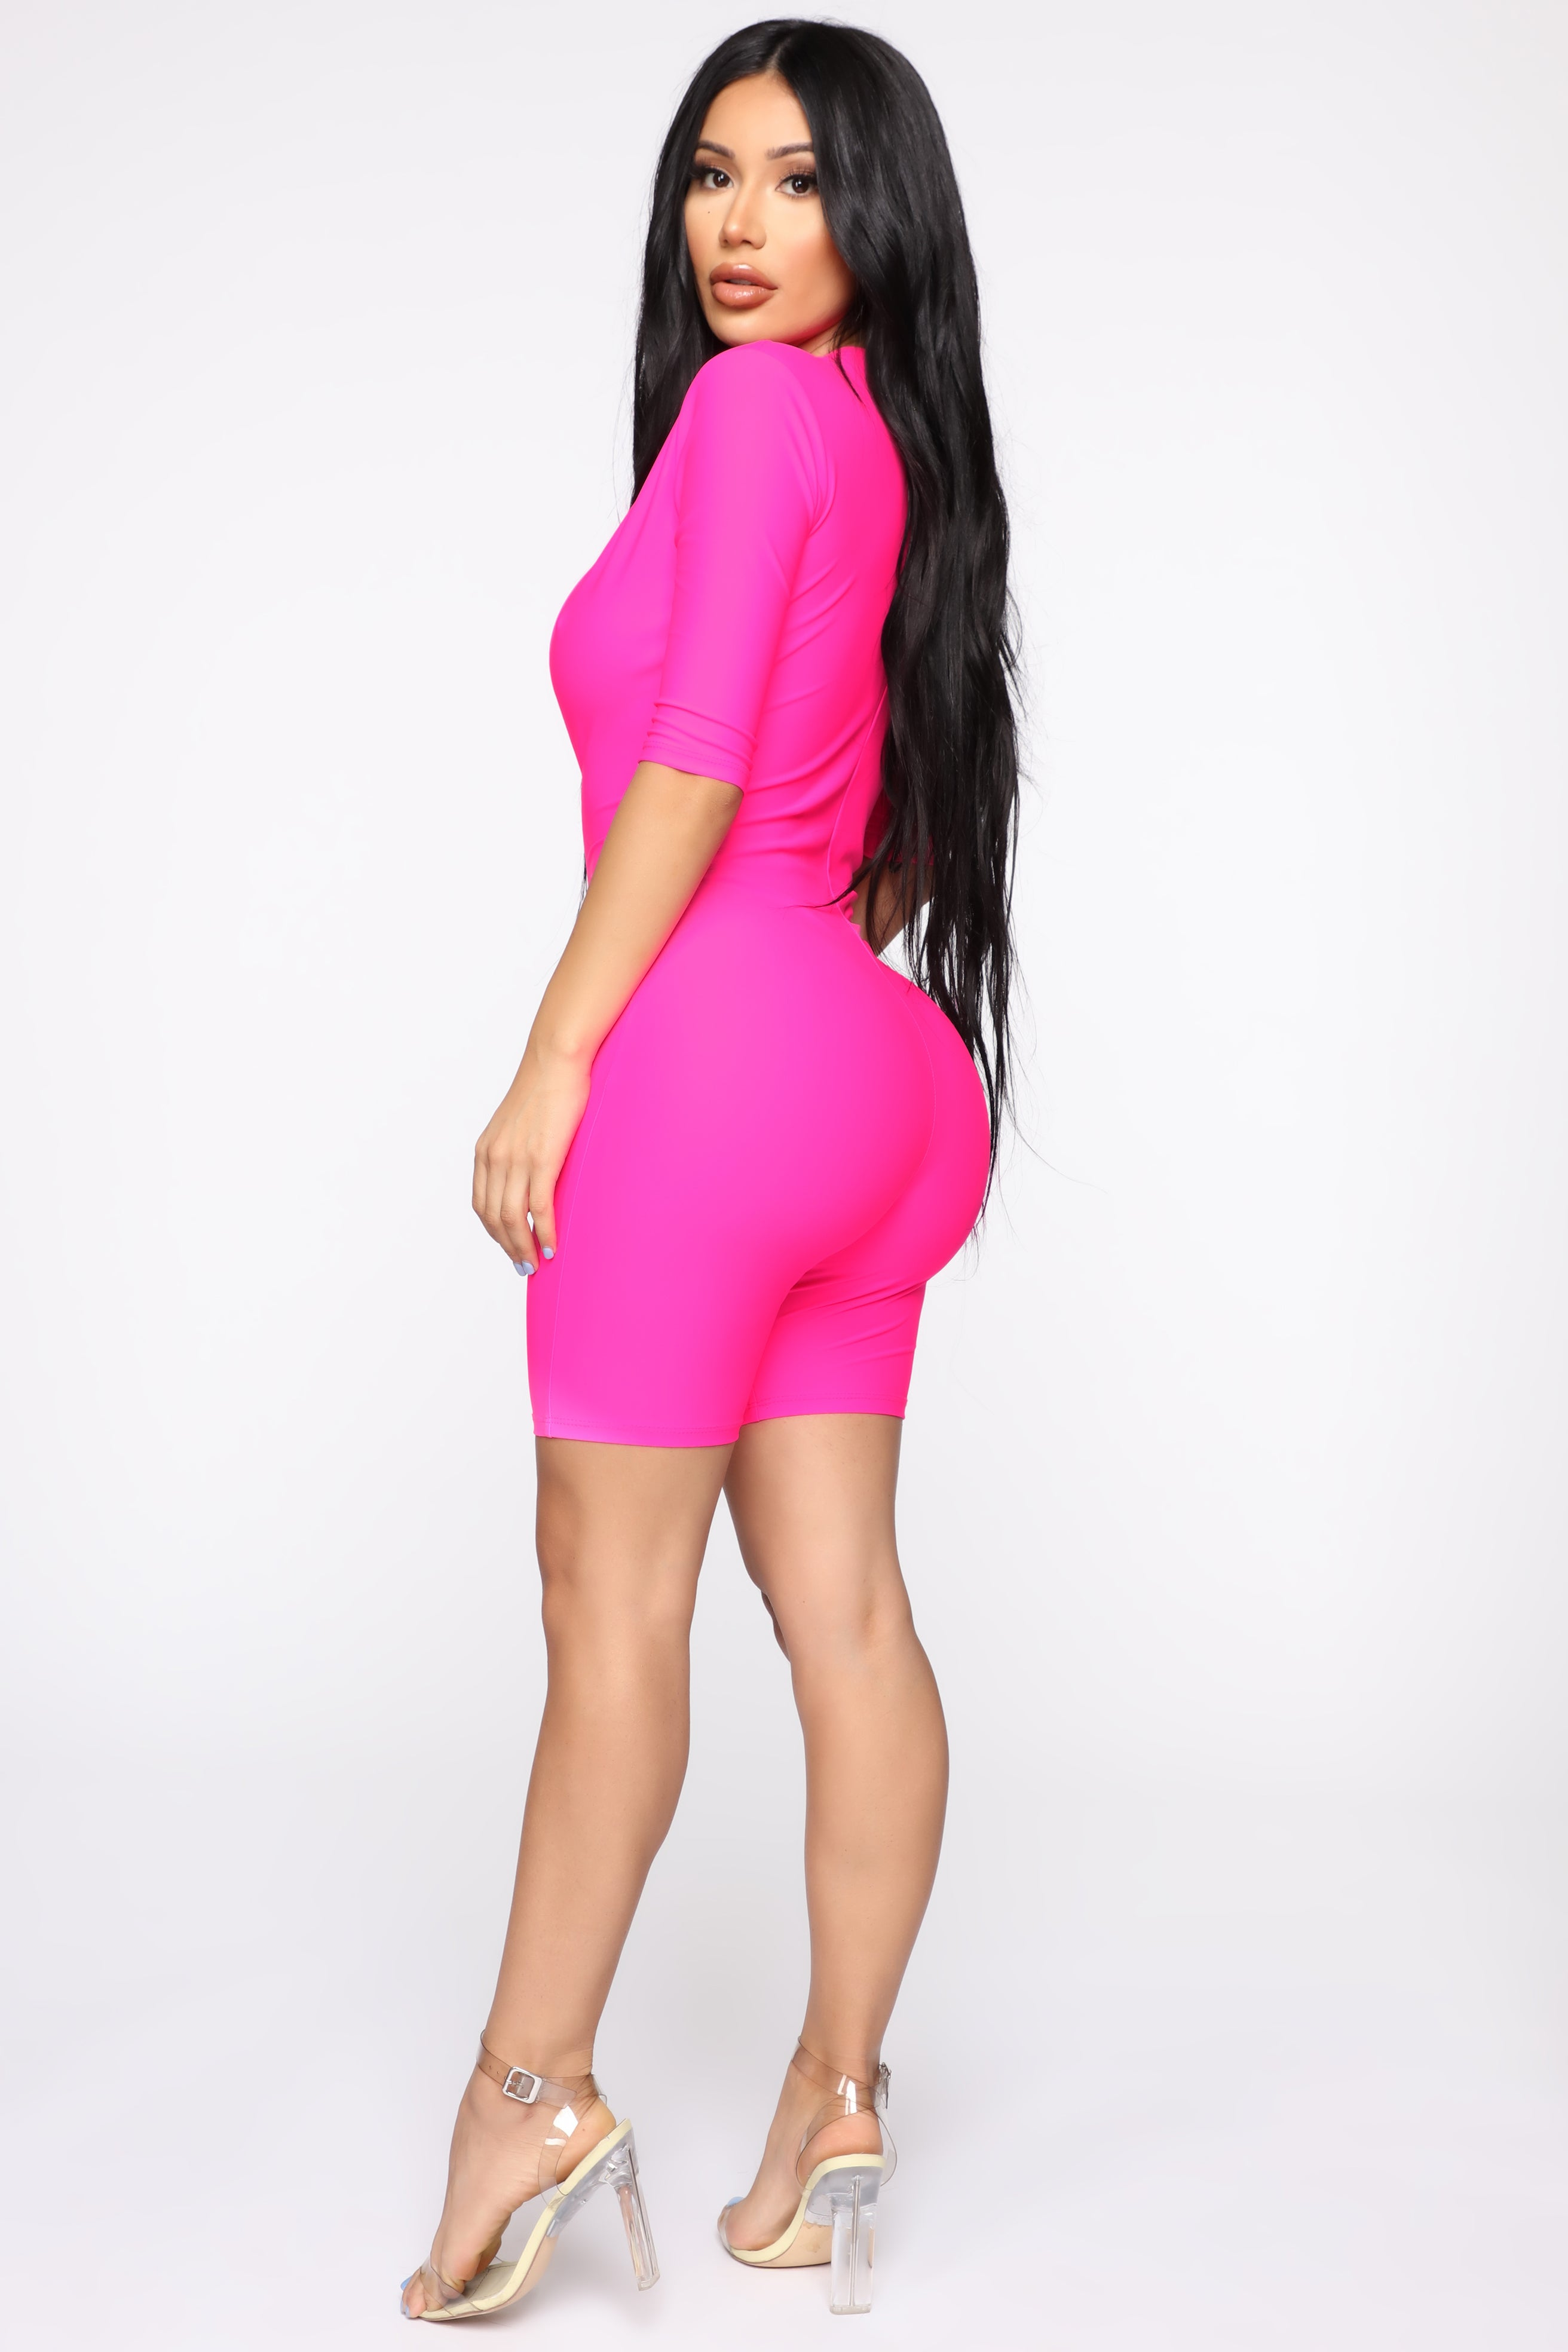 1b95c84728098 Electric Mood Romper - Hot Pink